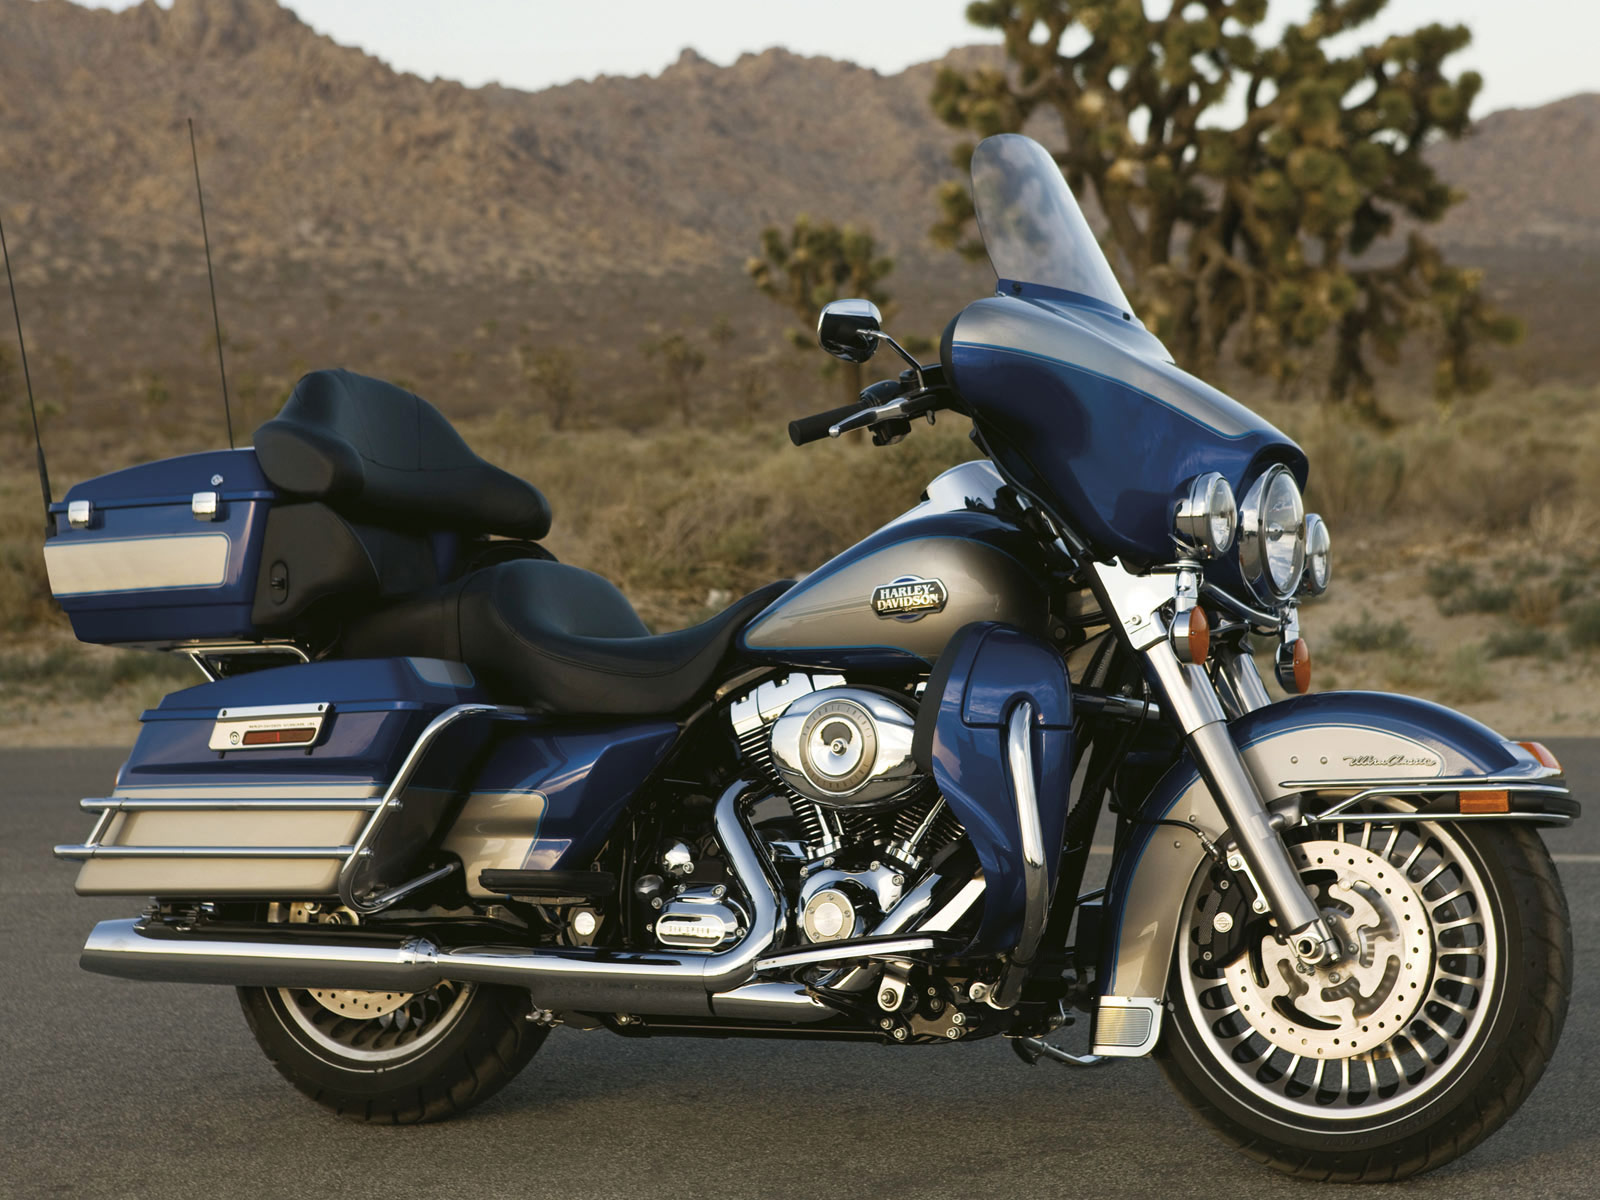 Harley-Davidson FLHTC 1340 Electra Glide Classic 1985 #12